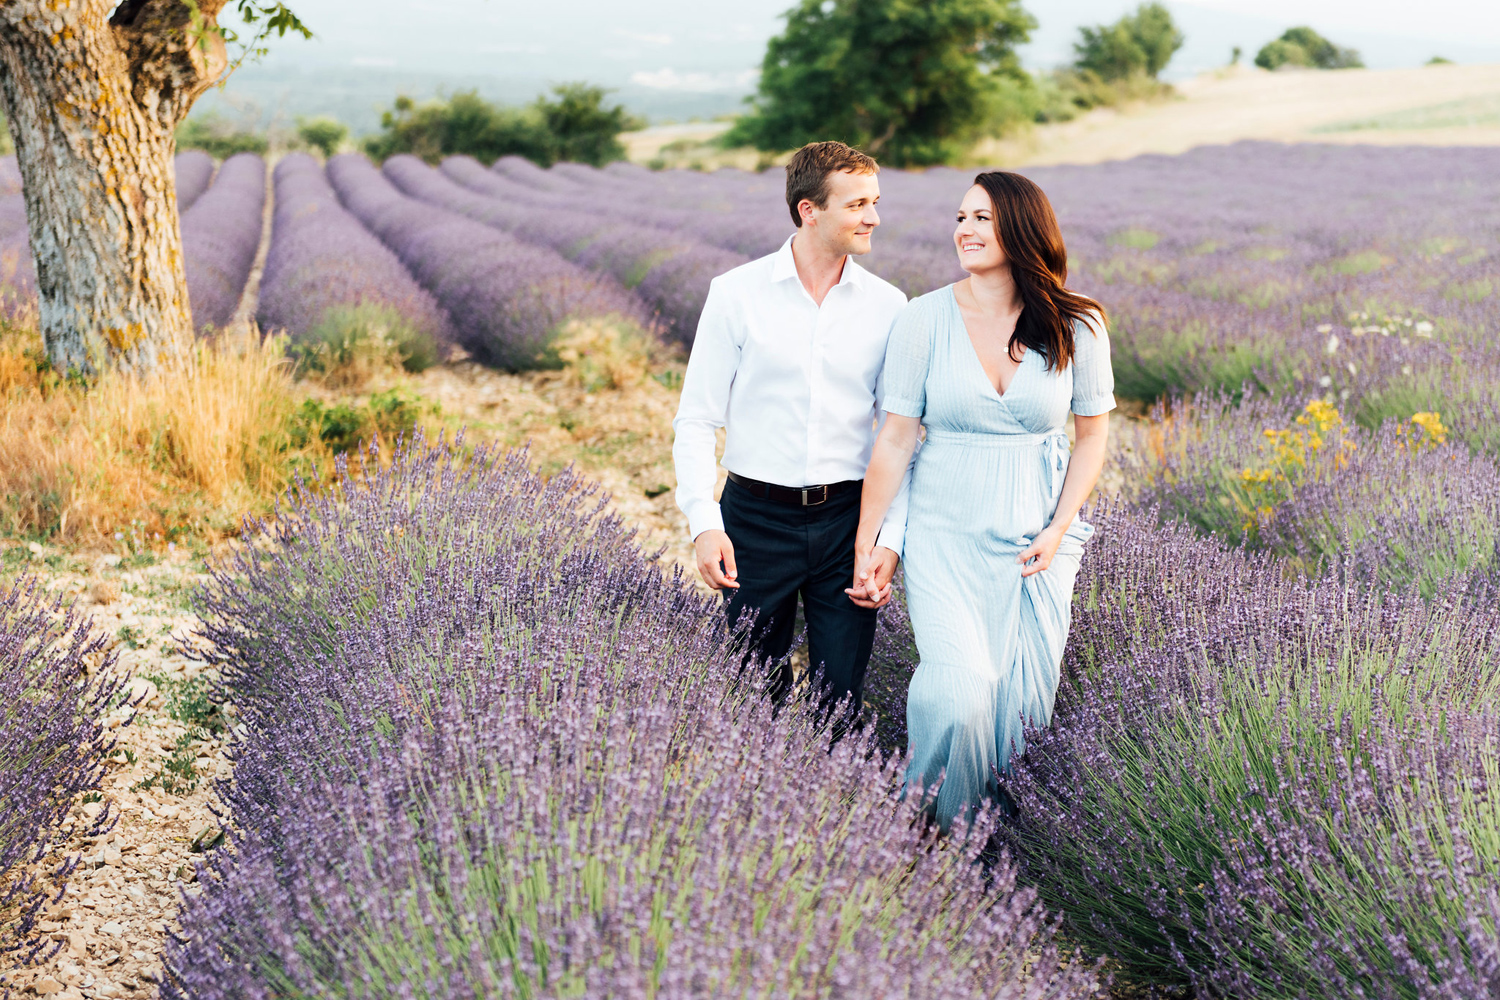 008-katie-mitchell-provence-wedding-portrait-engagement-photographer-south-of-france.jpg